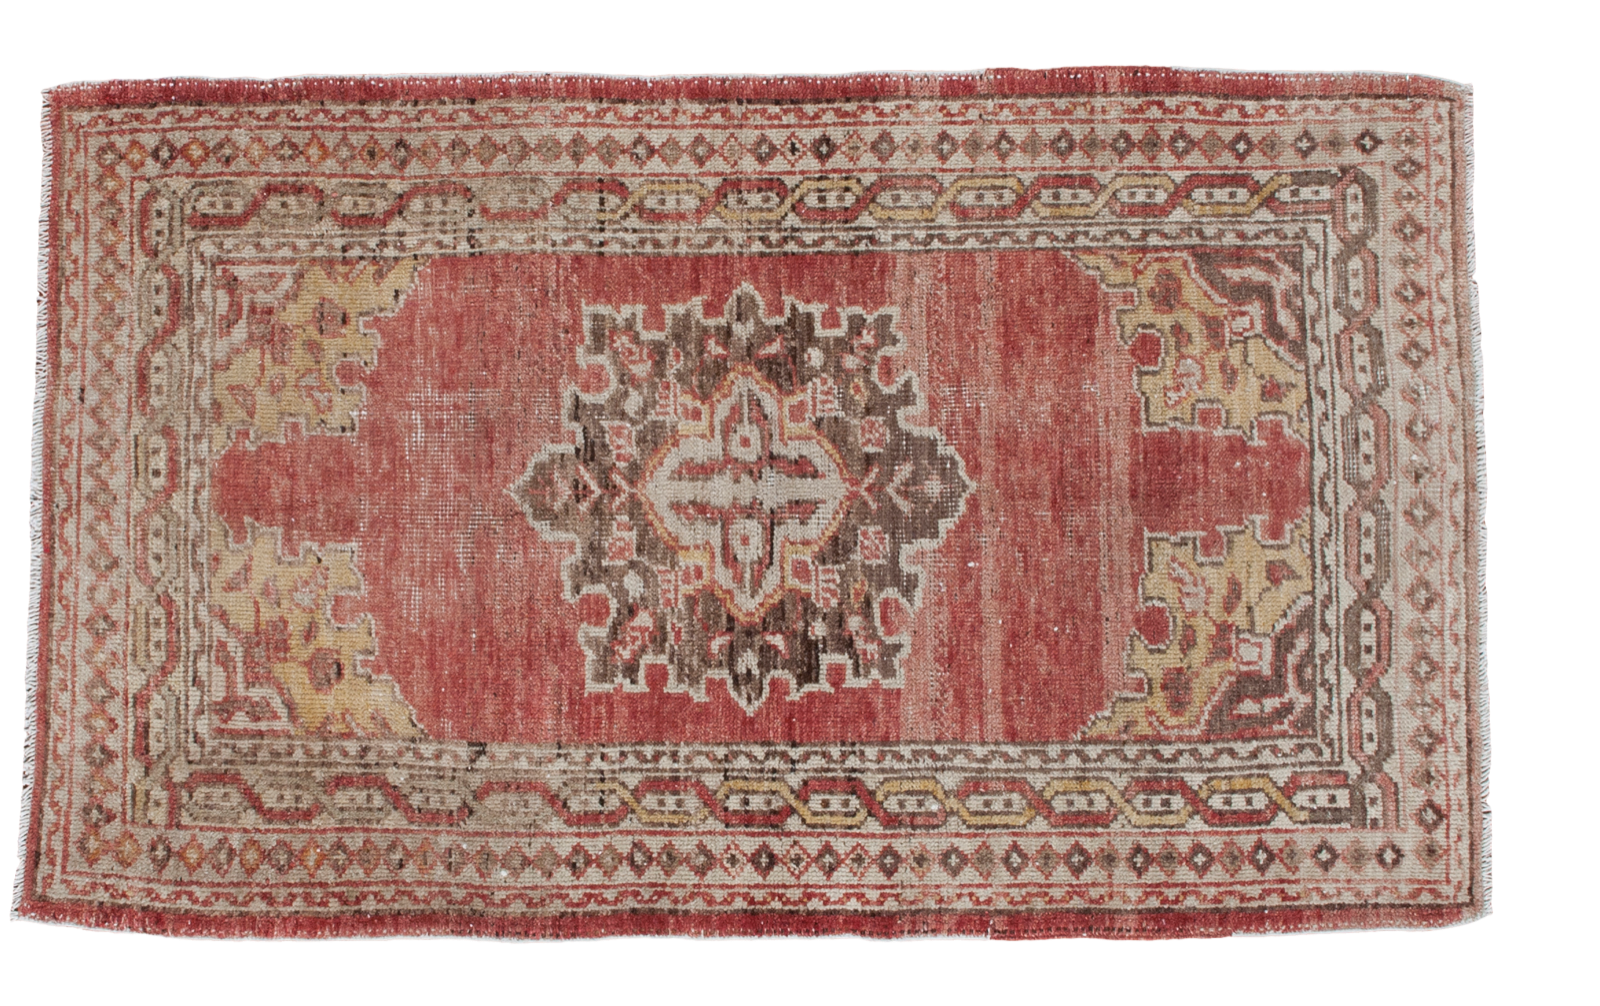 Classic Vintage Oushak with Brick Red and Soft Saffron